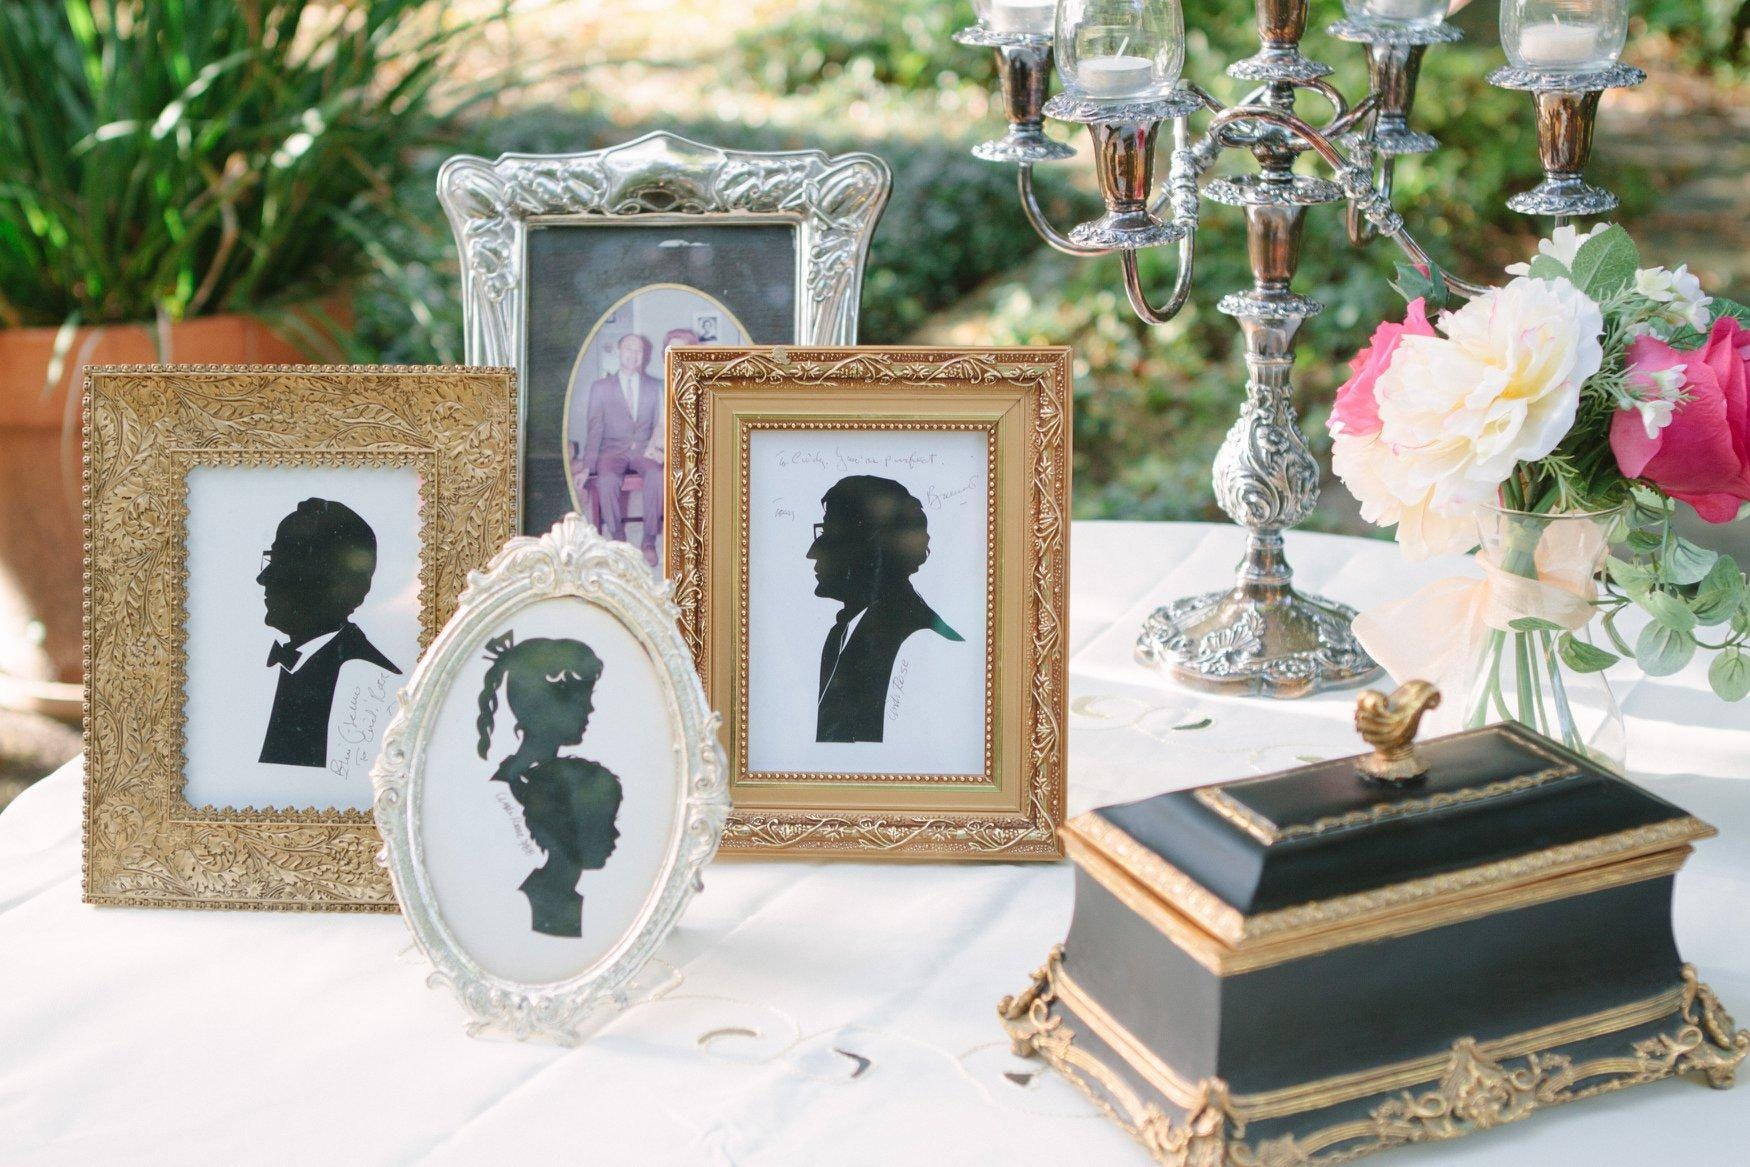 Silhouettes by Cindi at Briargrove Pharmacy